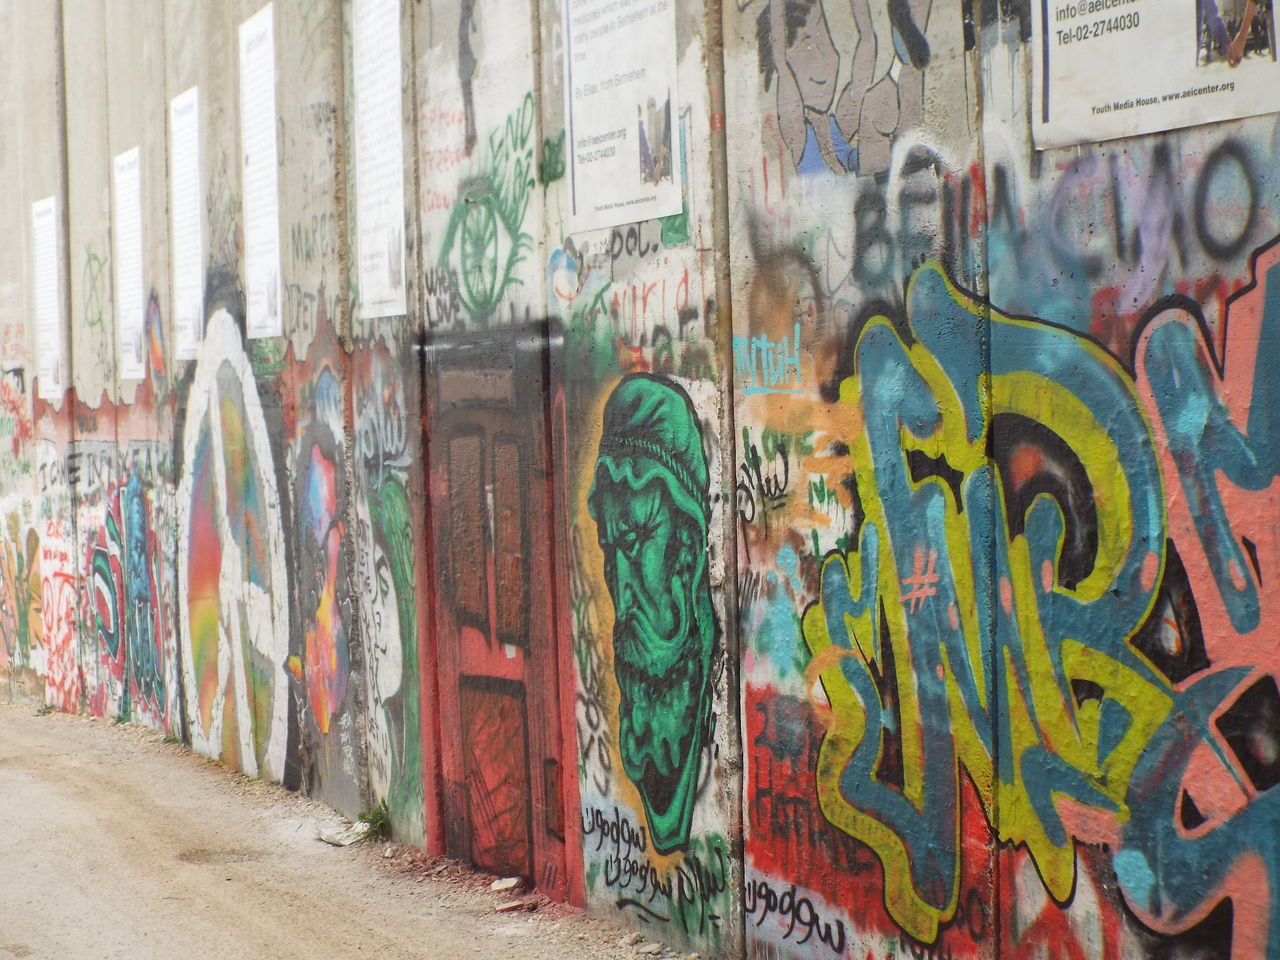 Image captured at the dividing wall between Palestine and Israel in Bethlehem Bethlehem Centenary  Concrete Divide Dividing Wall Graffiti Israel Middle East Palestine Palestine Side Of The Wall Political Political Street Art Security Seperation Spray Paint Tagging Tension Thought Provoking  Wall